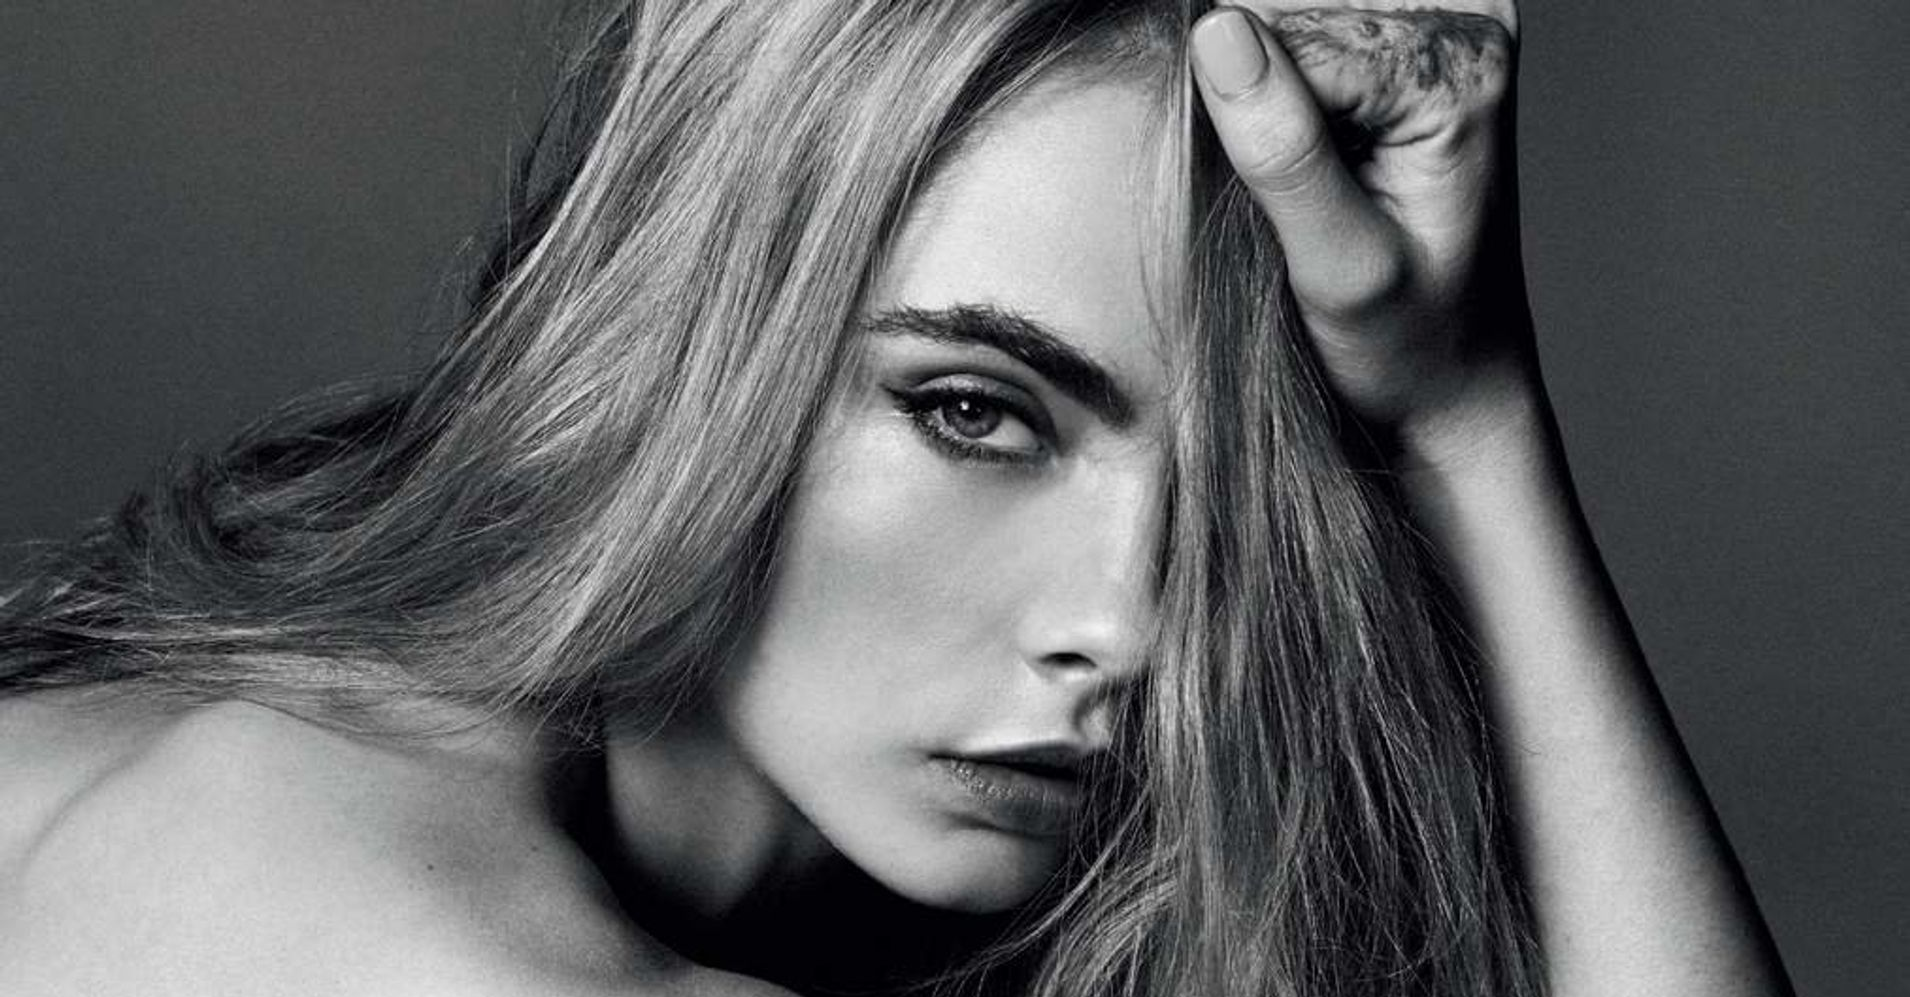 Cara Delevingne Bares All In Sexy Nude Photo Shoot - Maxim